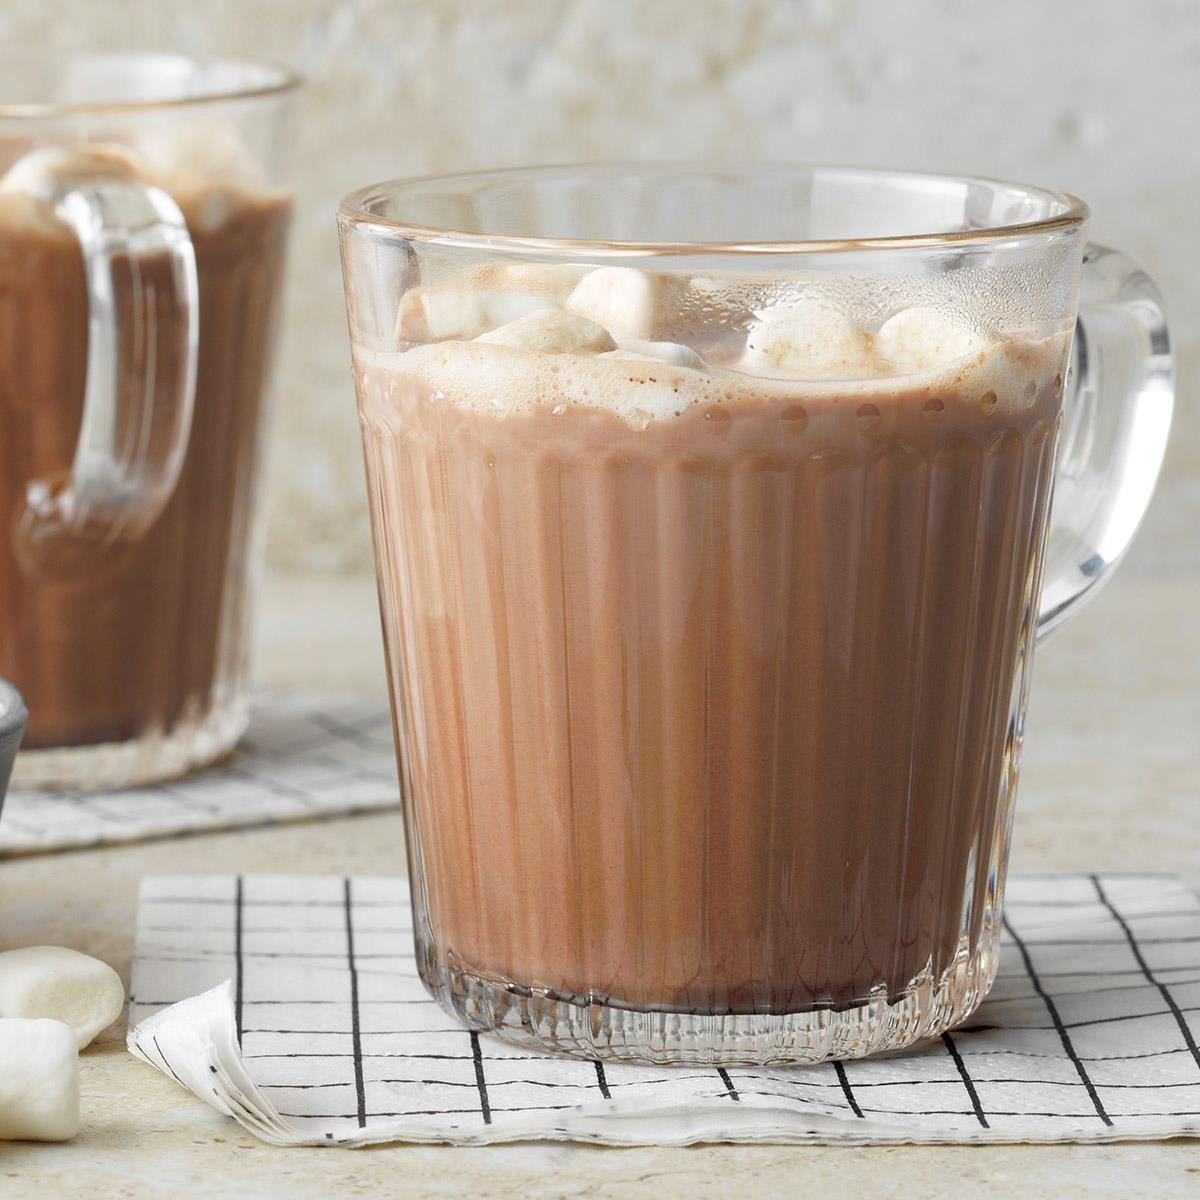 Homemade Hot Cocoa Recipe How To Make It Taste Of Home